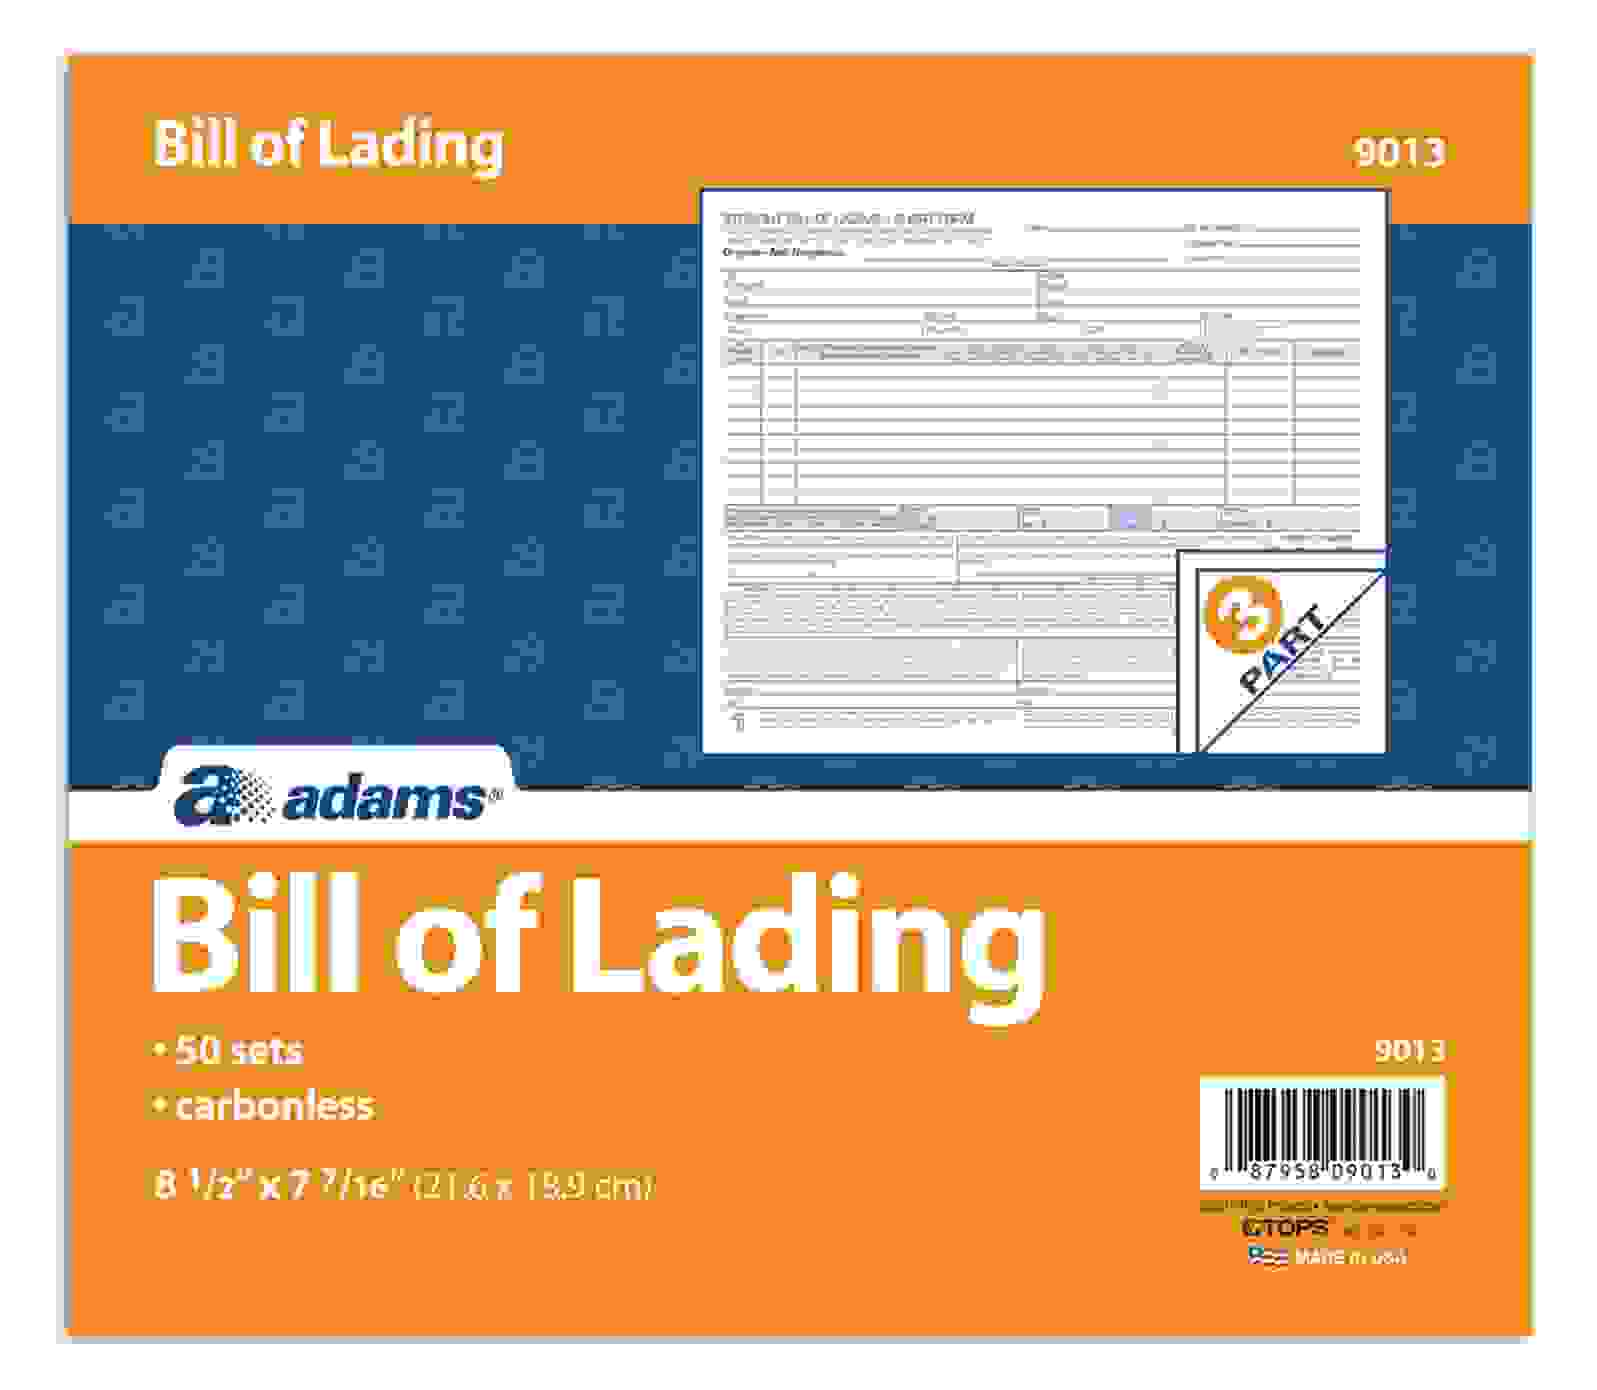 Bill of Lading Rules